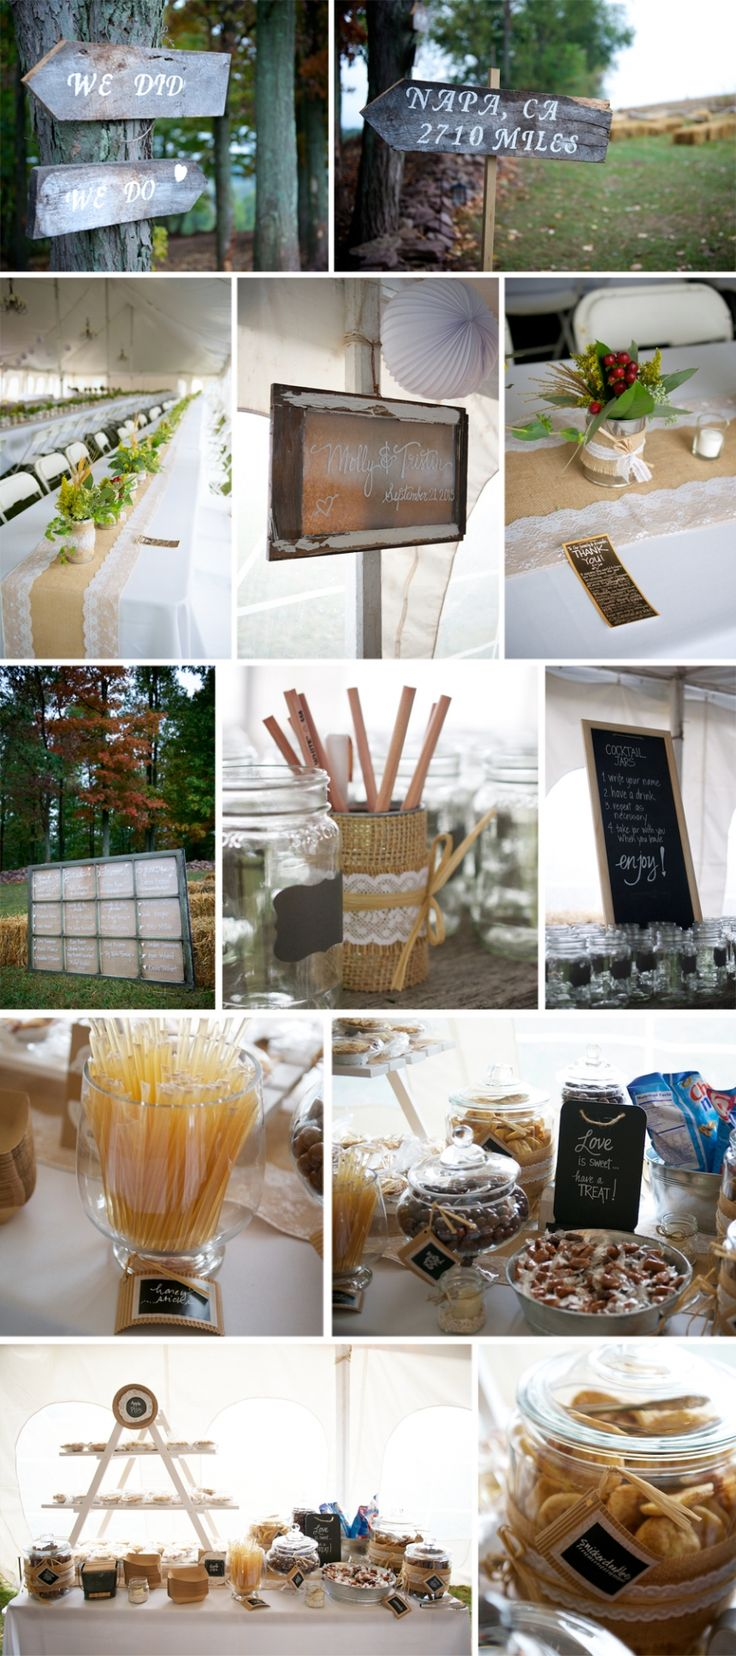 Central PA Farm Wedding Reception Ideas  | Chalkboards, Hand-painted Signs, Dessert Table  © Ashley Wittmer Photography